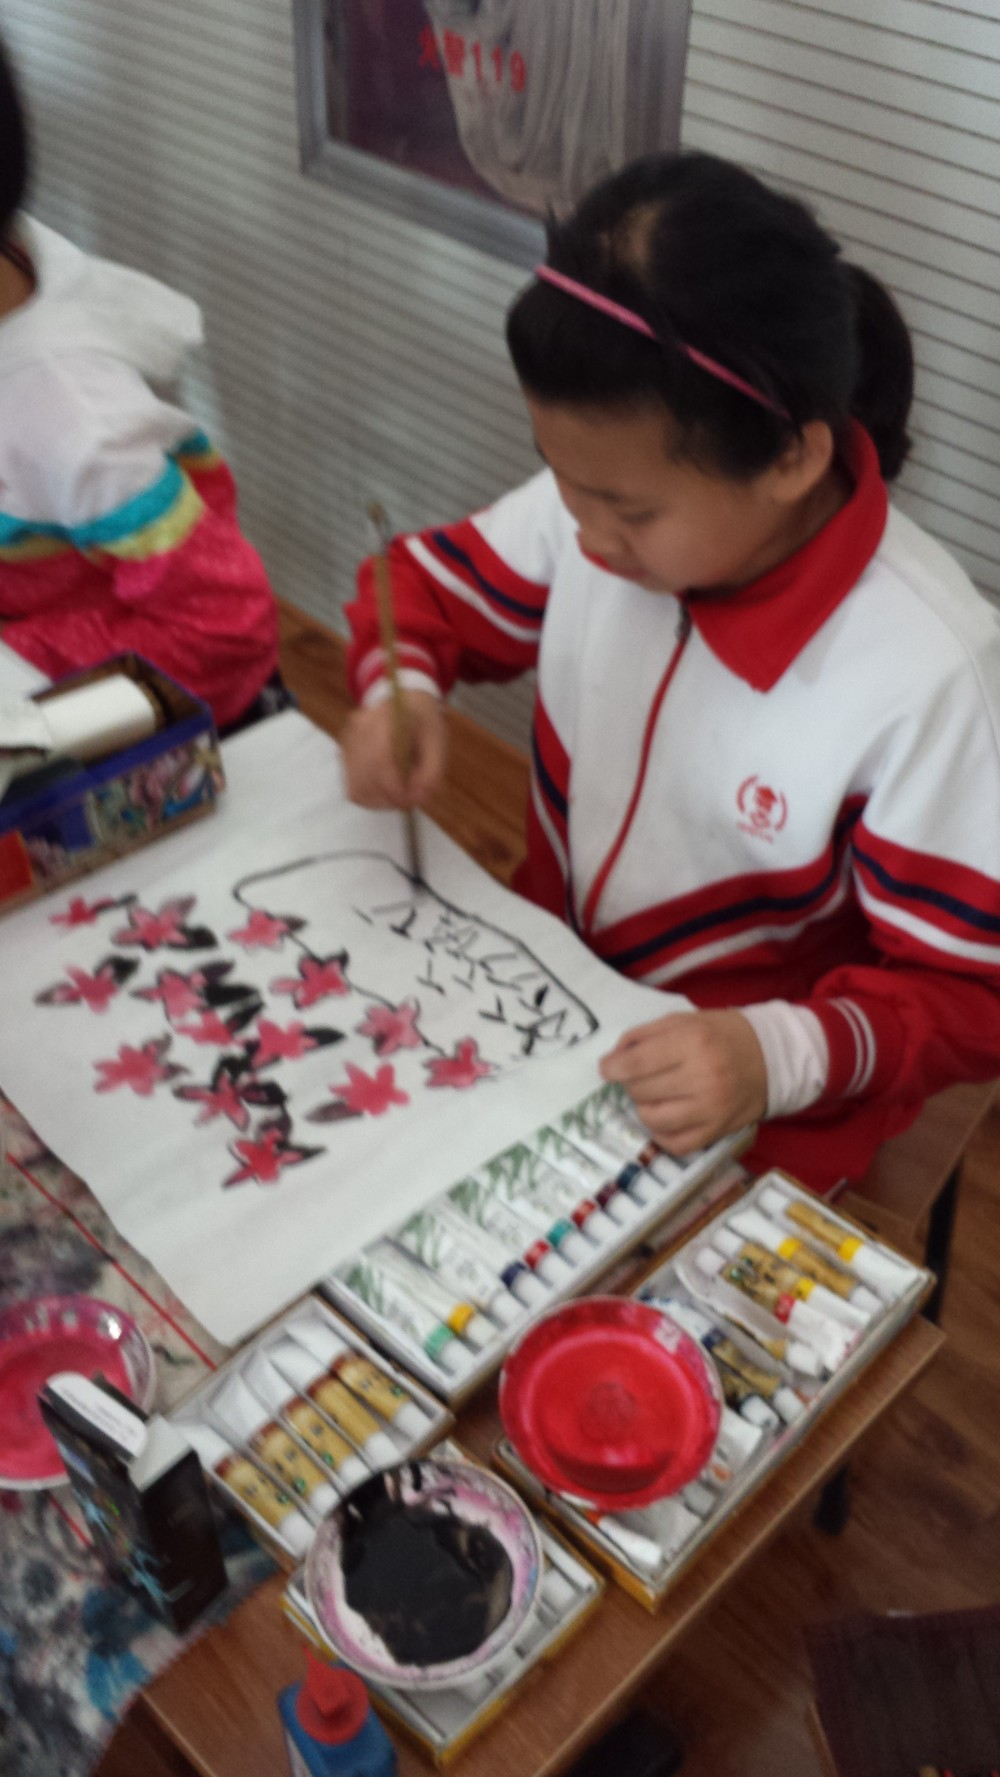 Elementary children hand painting pictures